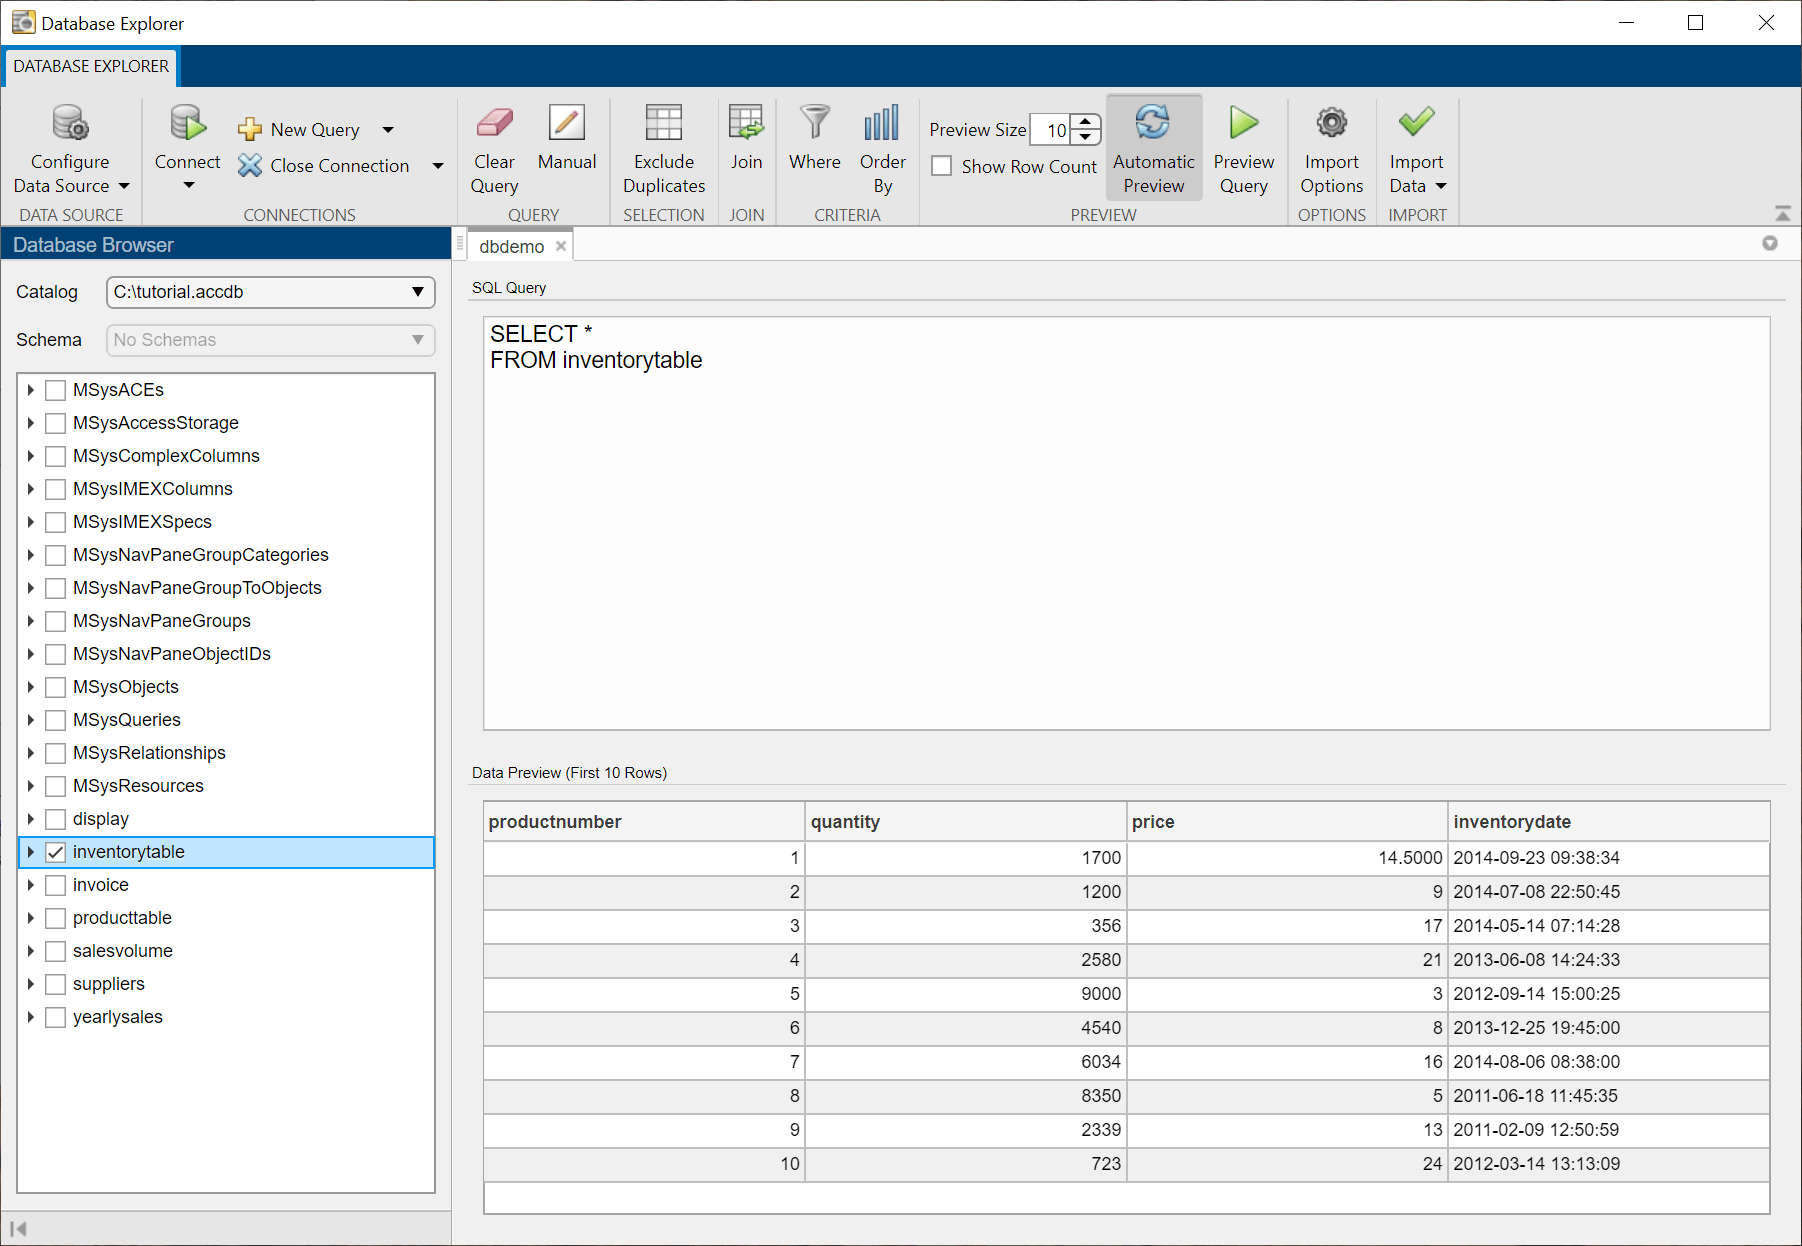 Configure, explore, and import database data - MATLAB